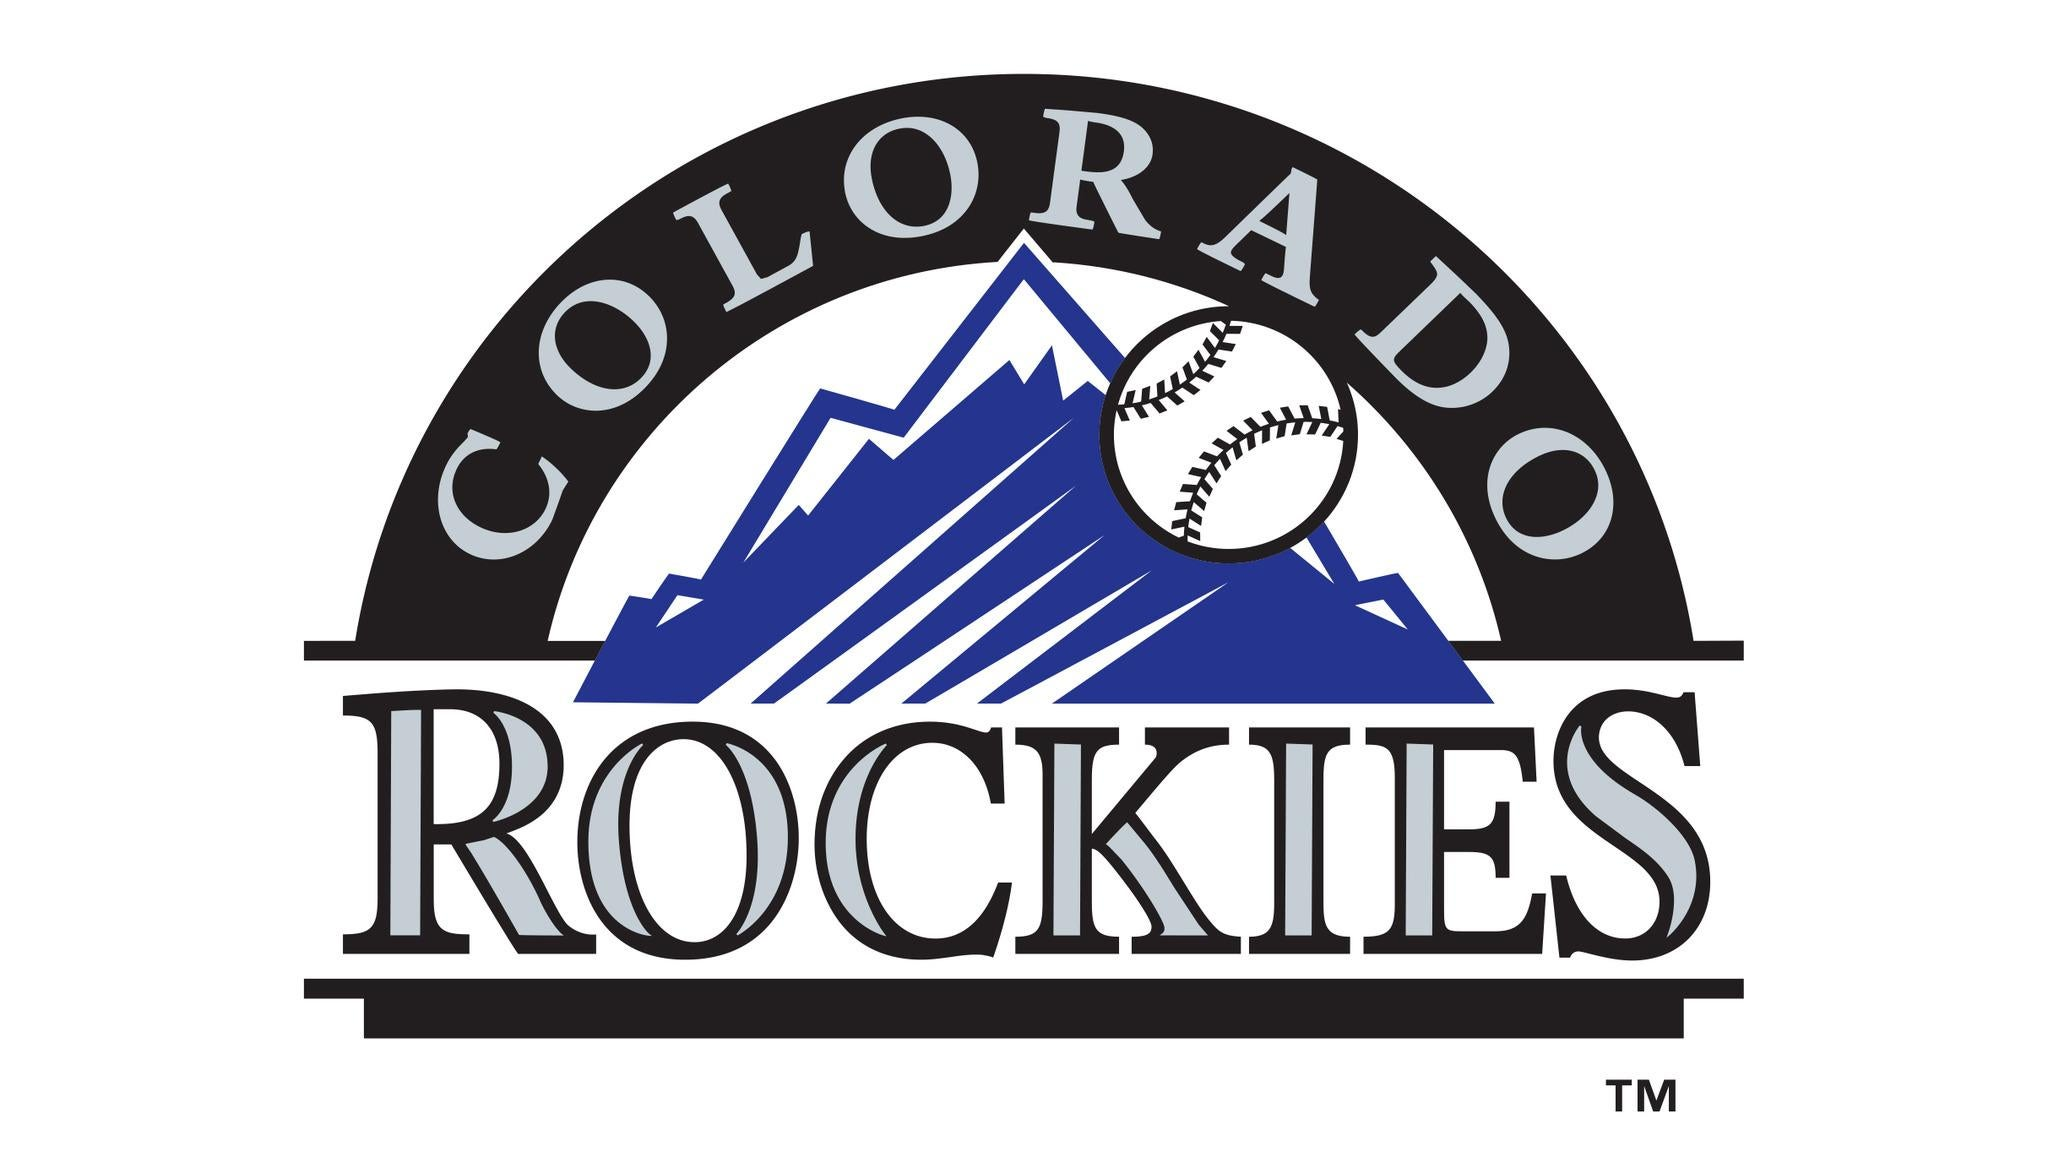 Colorado Rockies vs. Philadelphia Phillies at Coors Field